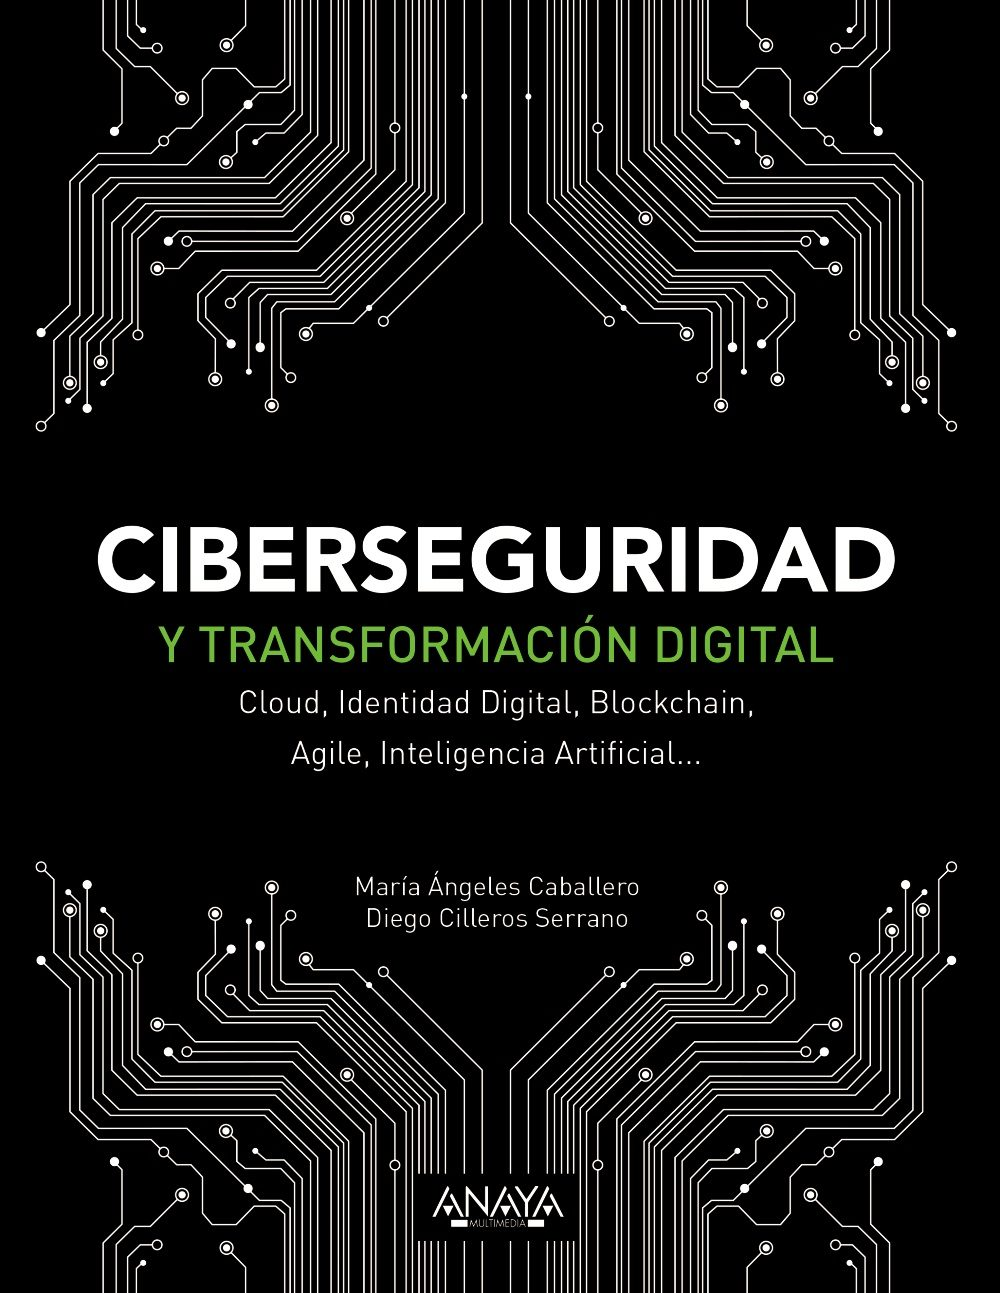 Ciberseguridad y transformación digital. 9788441541627